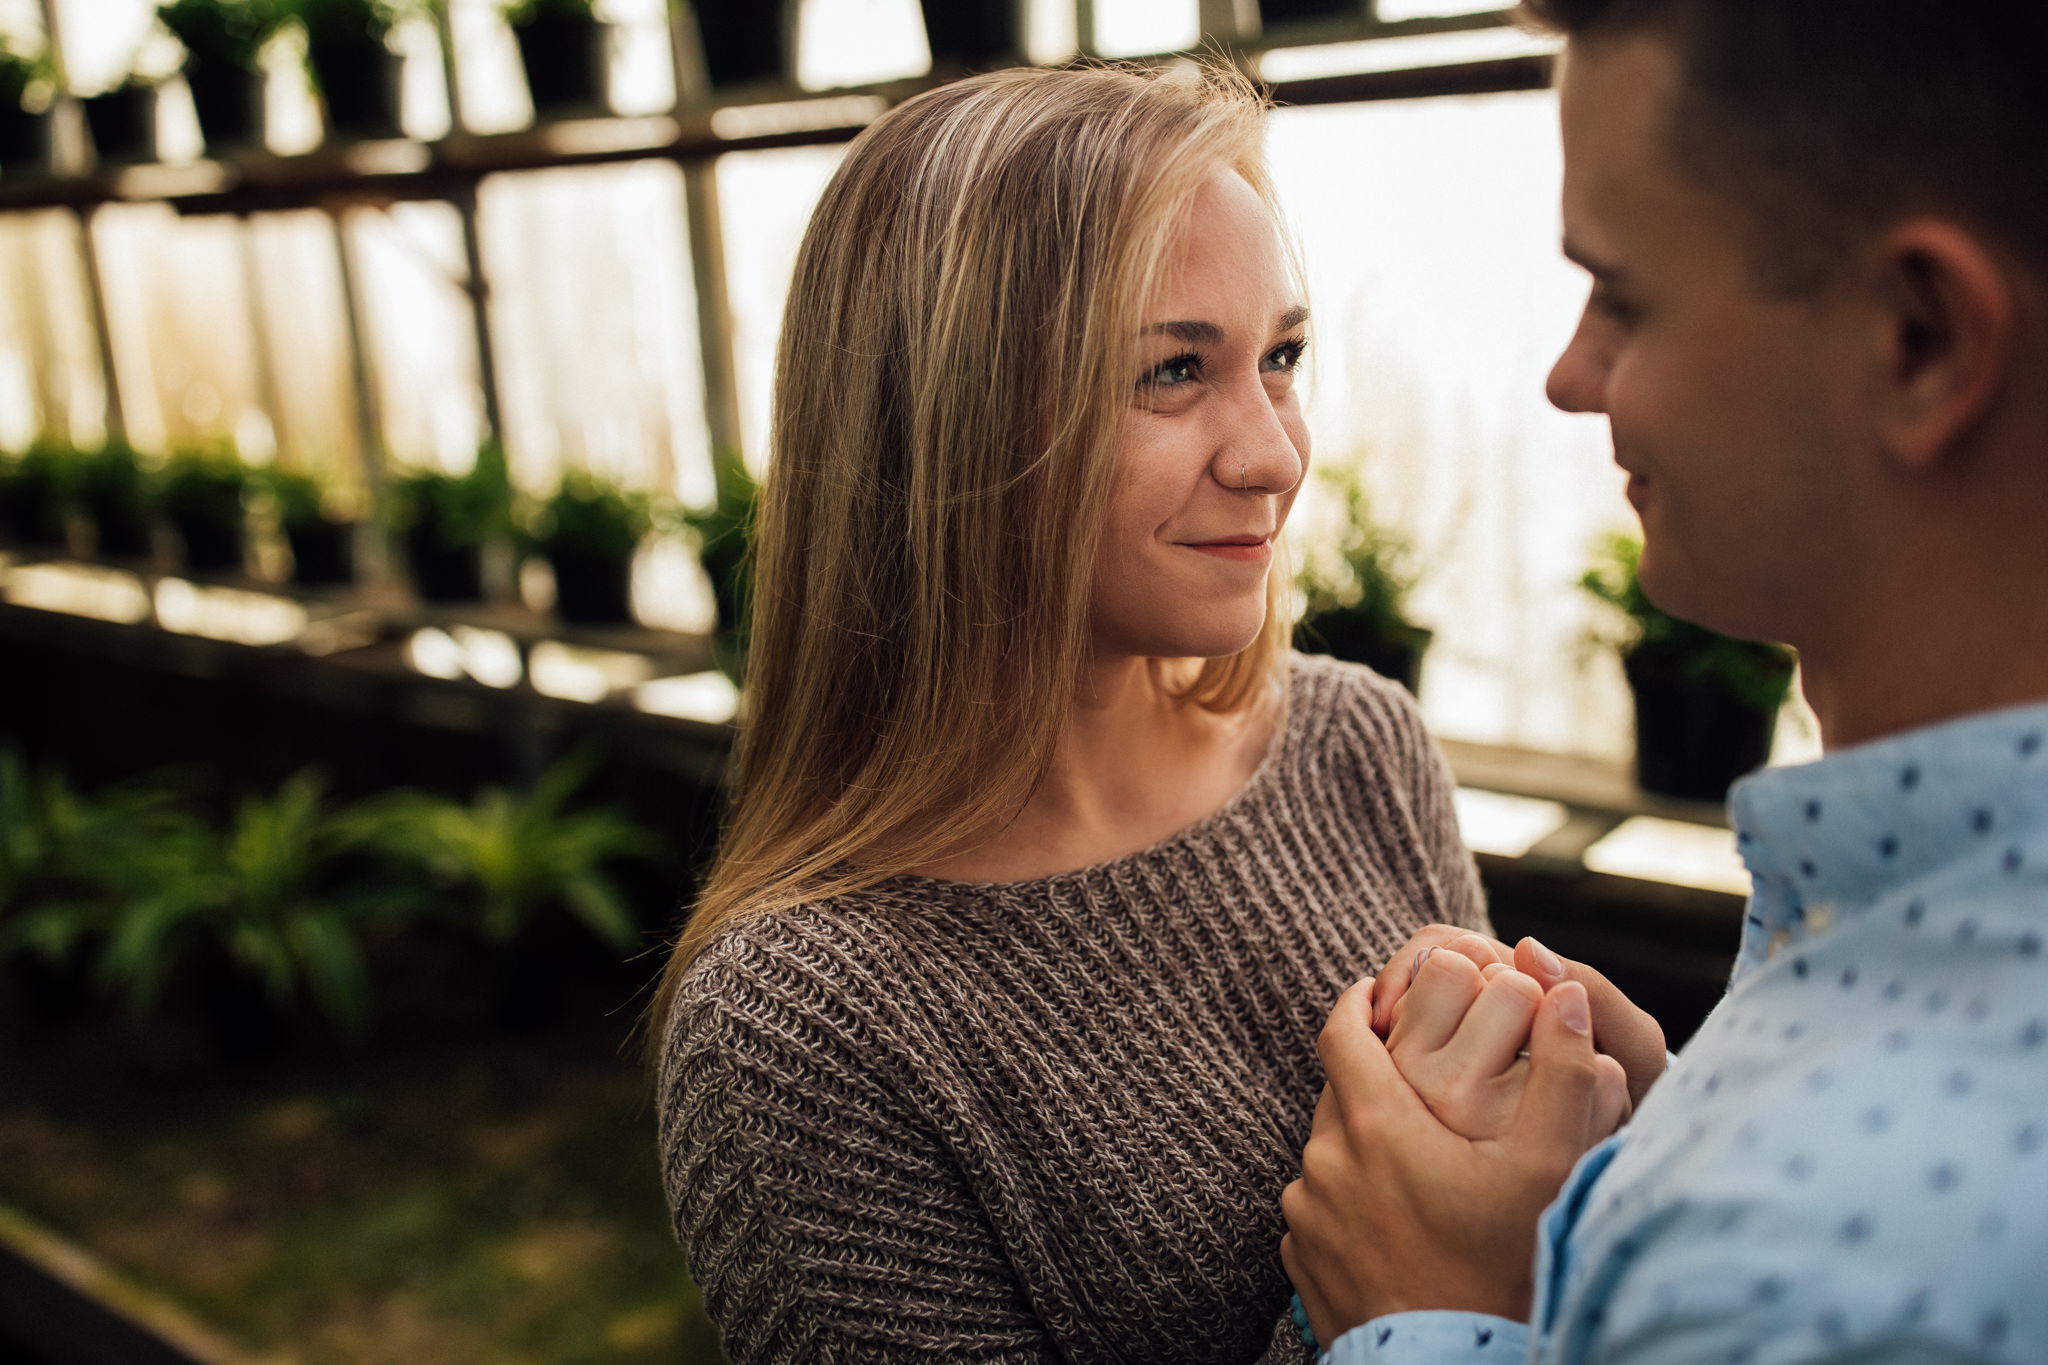 memphis-engagement-photographer-thewarmtharoundyou-greenhouse-engagement-pictures (30 of 118).jpg